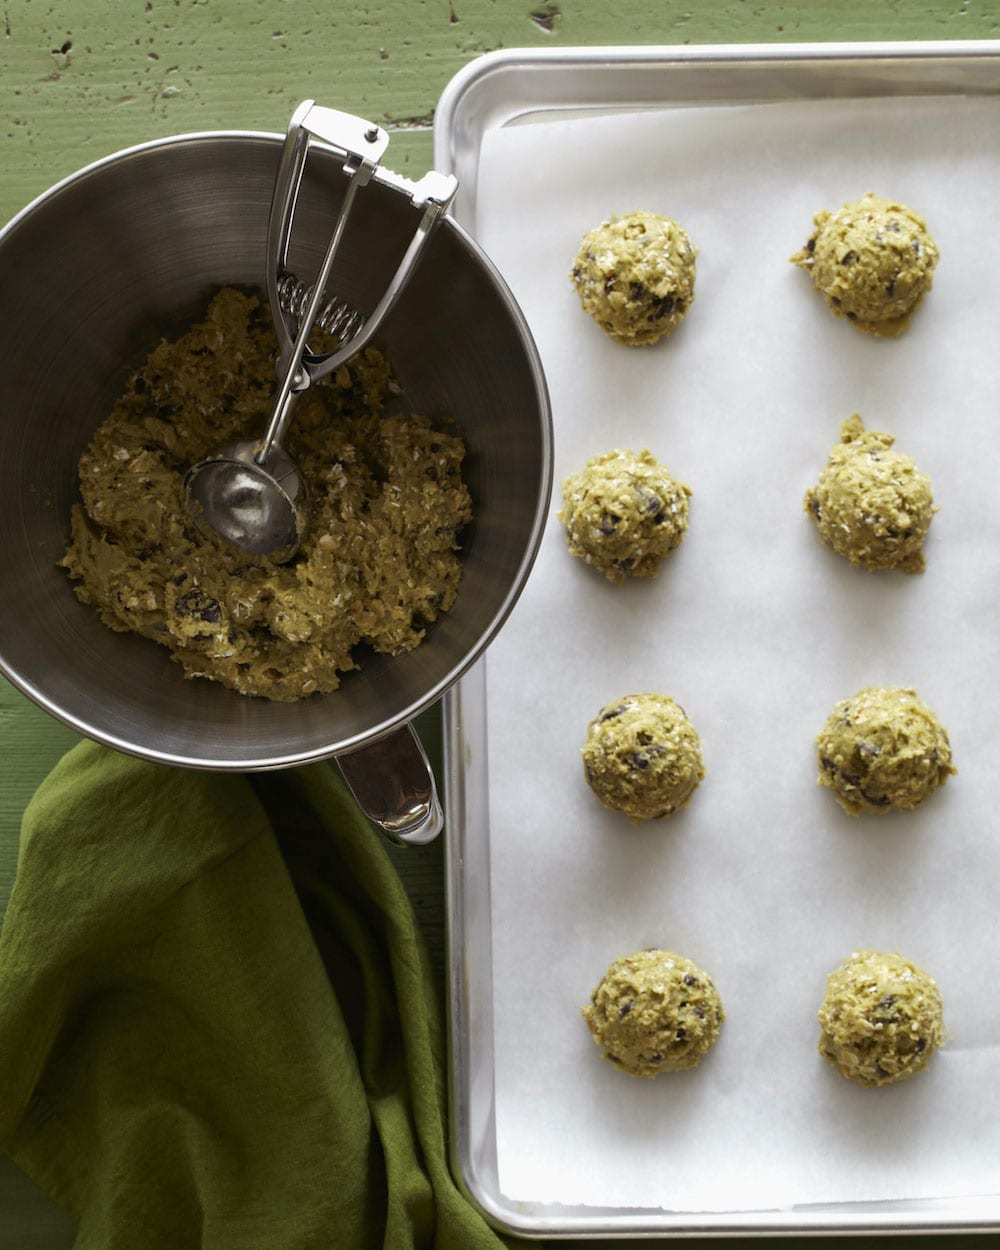 Avocado Chocolate Chip Cookies from Absolutely Avocados by Gaby Dalkin